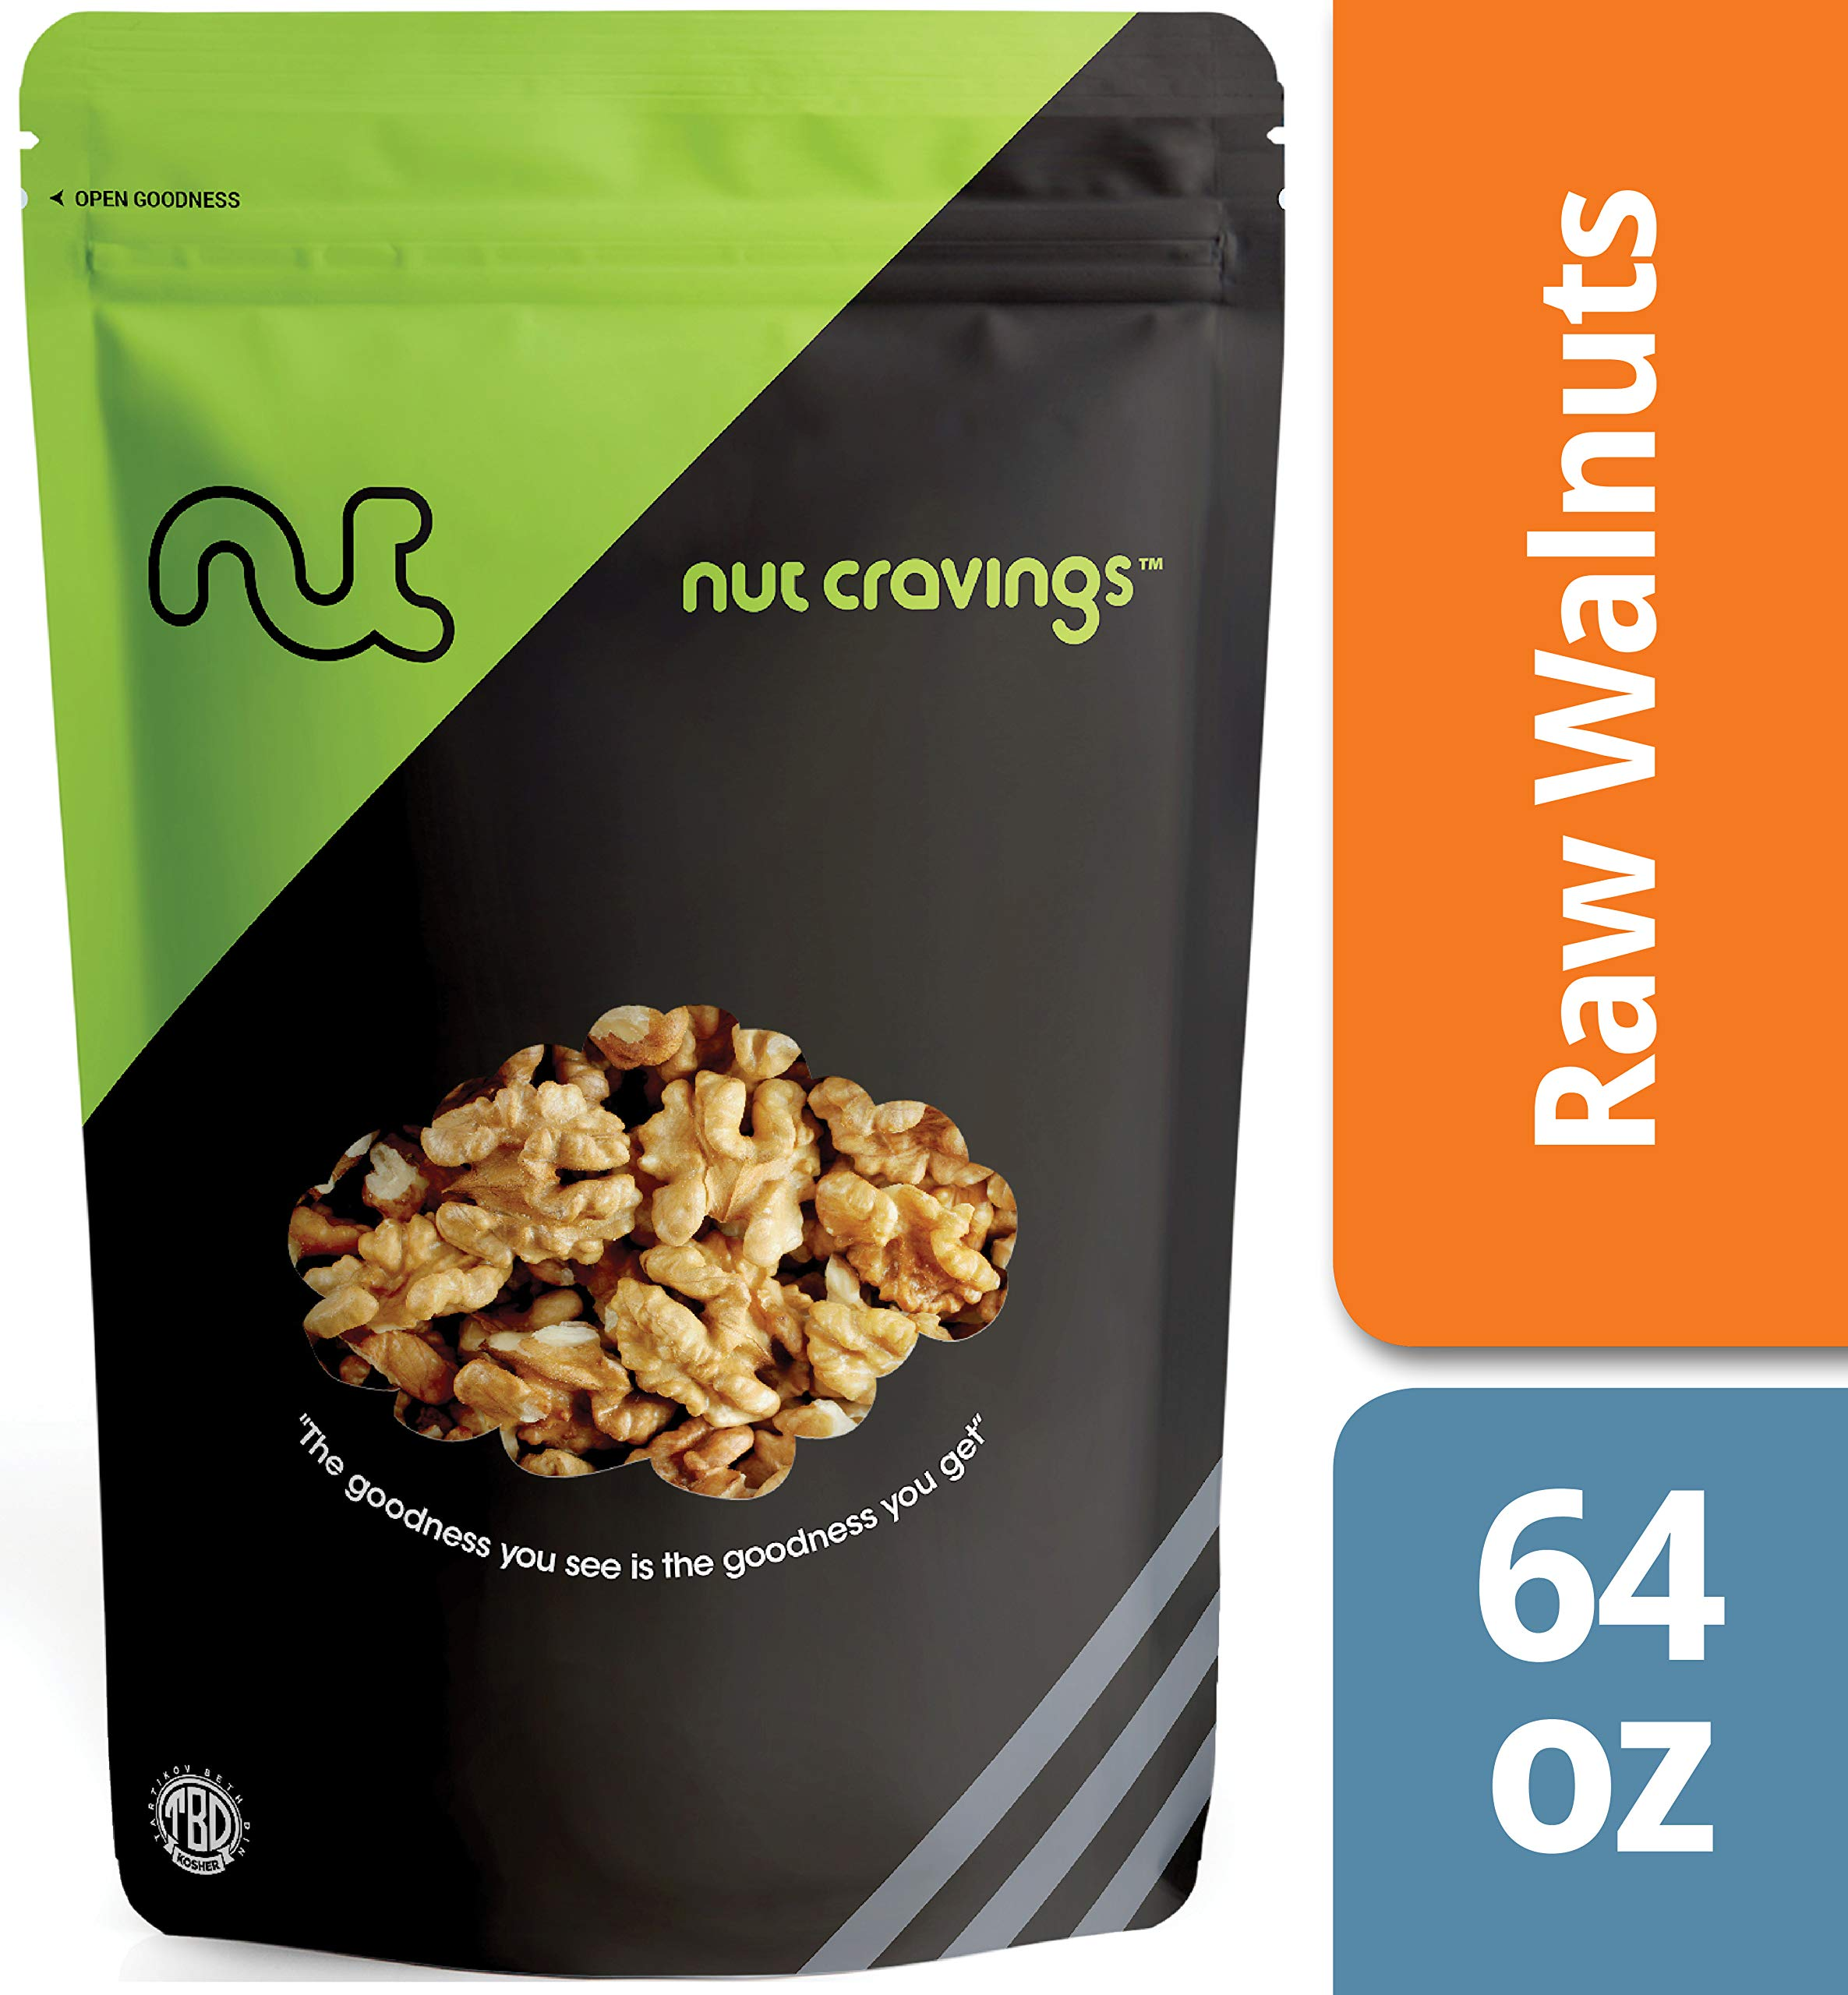 Nut Cravings California Raw Walnuts (4 Pounds) - 100% All Natural Shelled Halves and Pieces - 64 Ounce by Nut Cravings